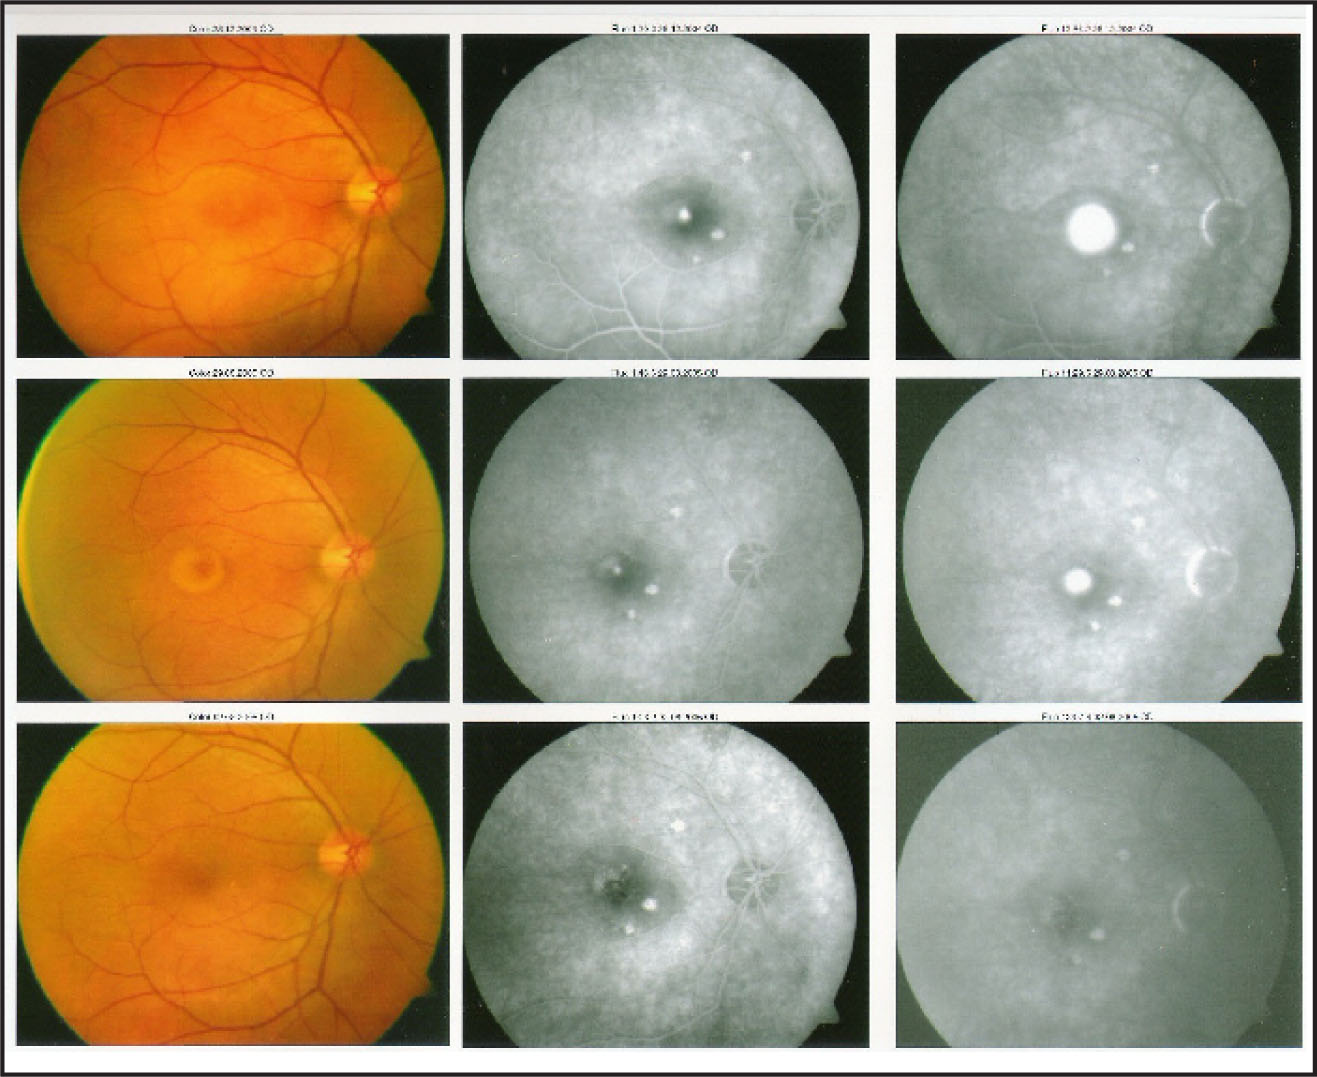 Upper Row (left): Right Fundus Showed a Circular Elevation in the Macular Area Suggestive of Neurosensory Detachment. Upper Row (middle & Right): Ink-Blot Type of RPE Leak Abutting Center of the Fovea Along with Three Tiny RPE Detachments. Middle Row (left): Subretinal Fibrinous Exudates Have Appeared. Middle Row (middle & Right): Persistence of RPE Leaks and RPE Detachments. Lower Row (left): Mild Alteration of RPE at the Treated Area of TTT Along with Total Disappearance of Subretinal Exudates and Fluid. Lower Row (middle & Right): Obliteration of RPE Leak at the Treated Area of TTT, RPE Detachments Are Faintly Visible.